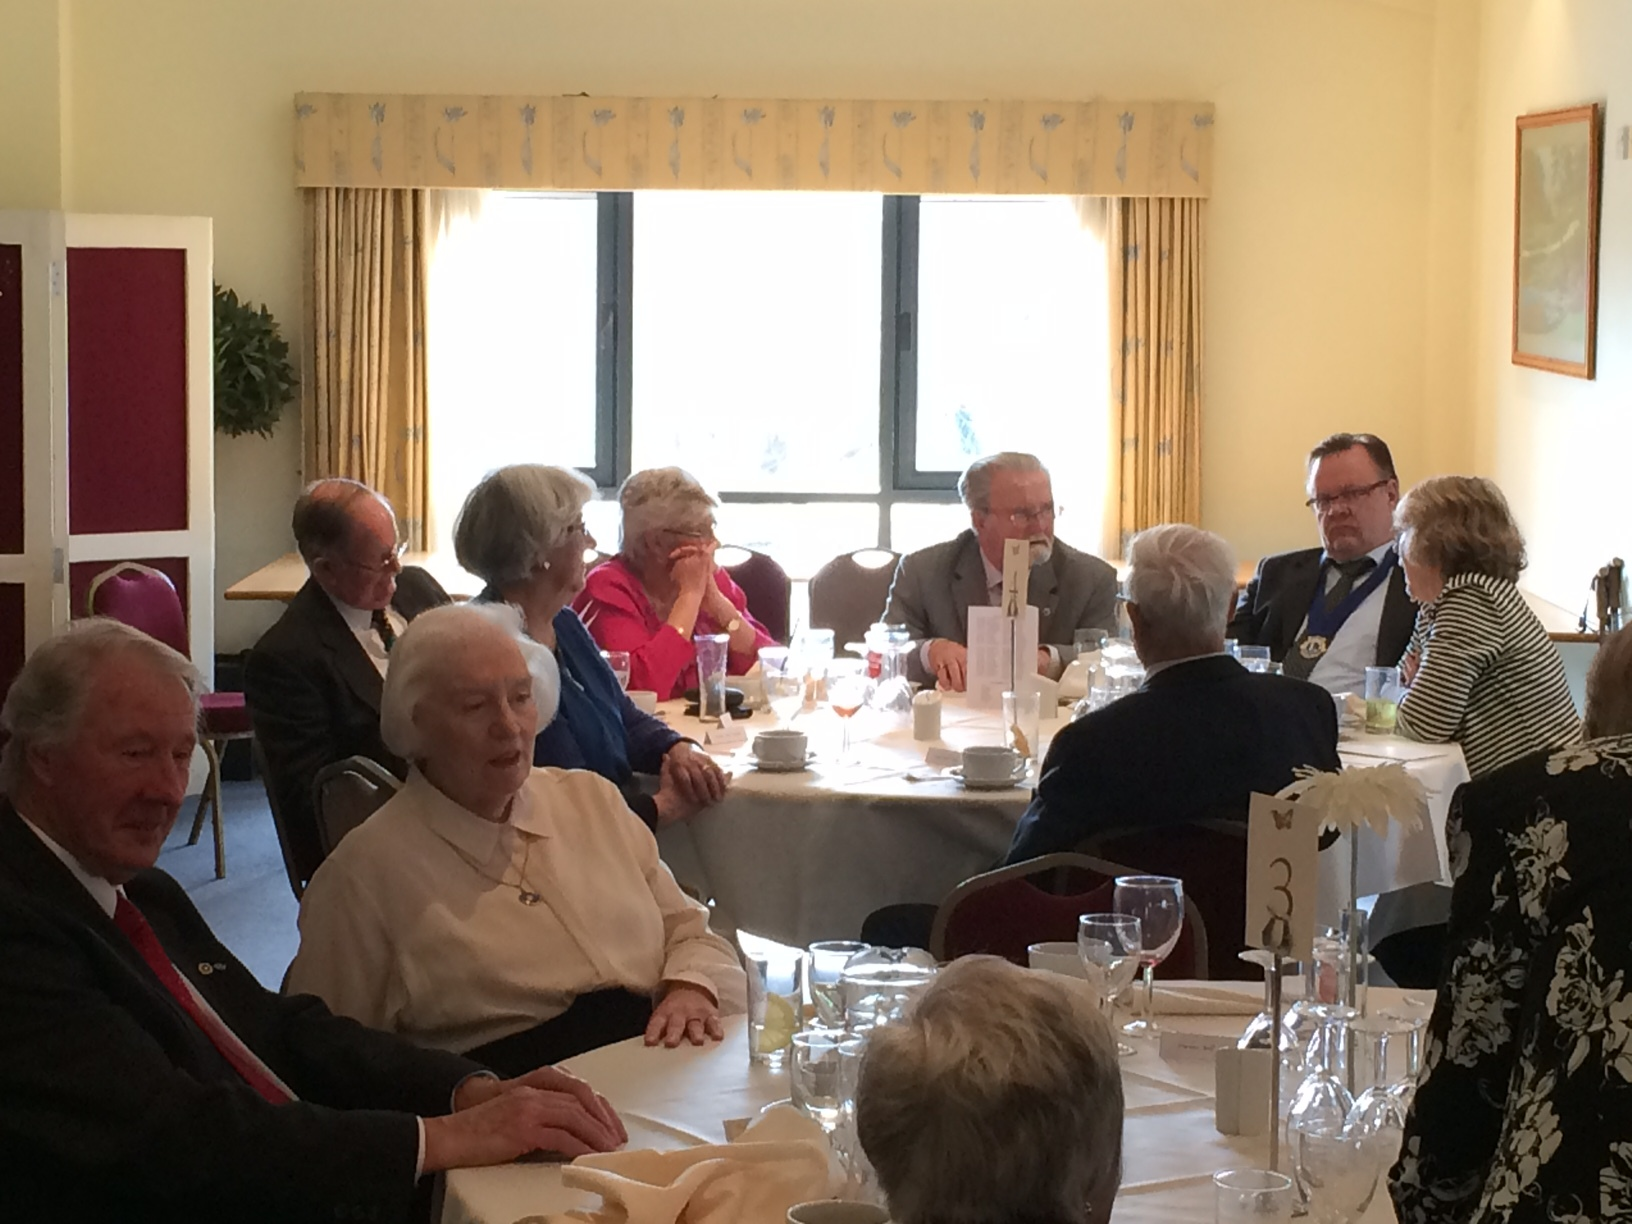 51st Anniversary Charter Lunch